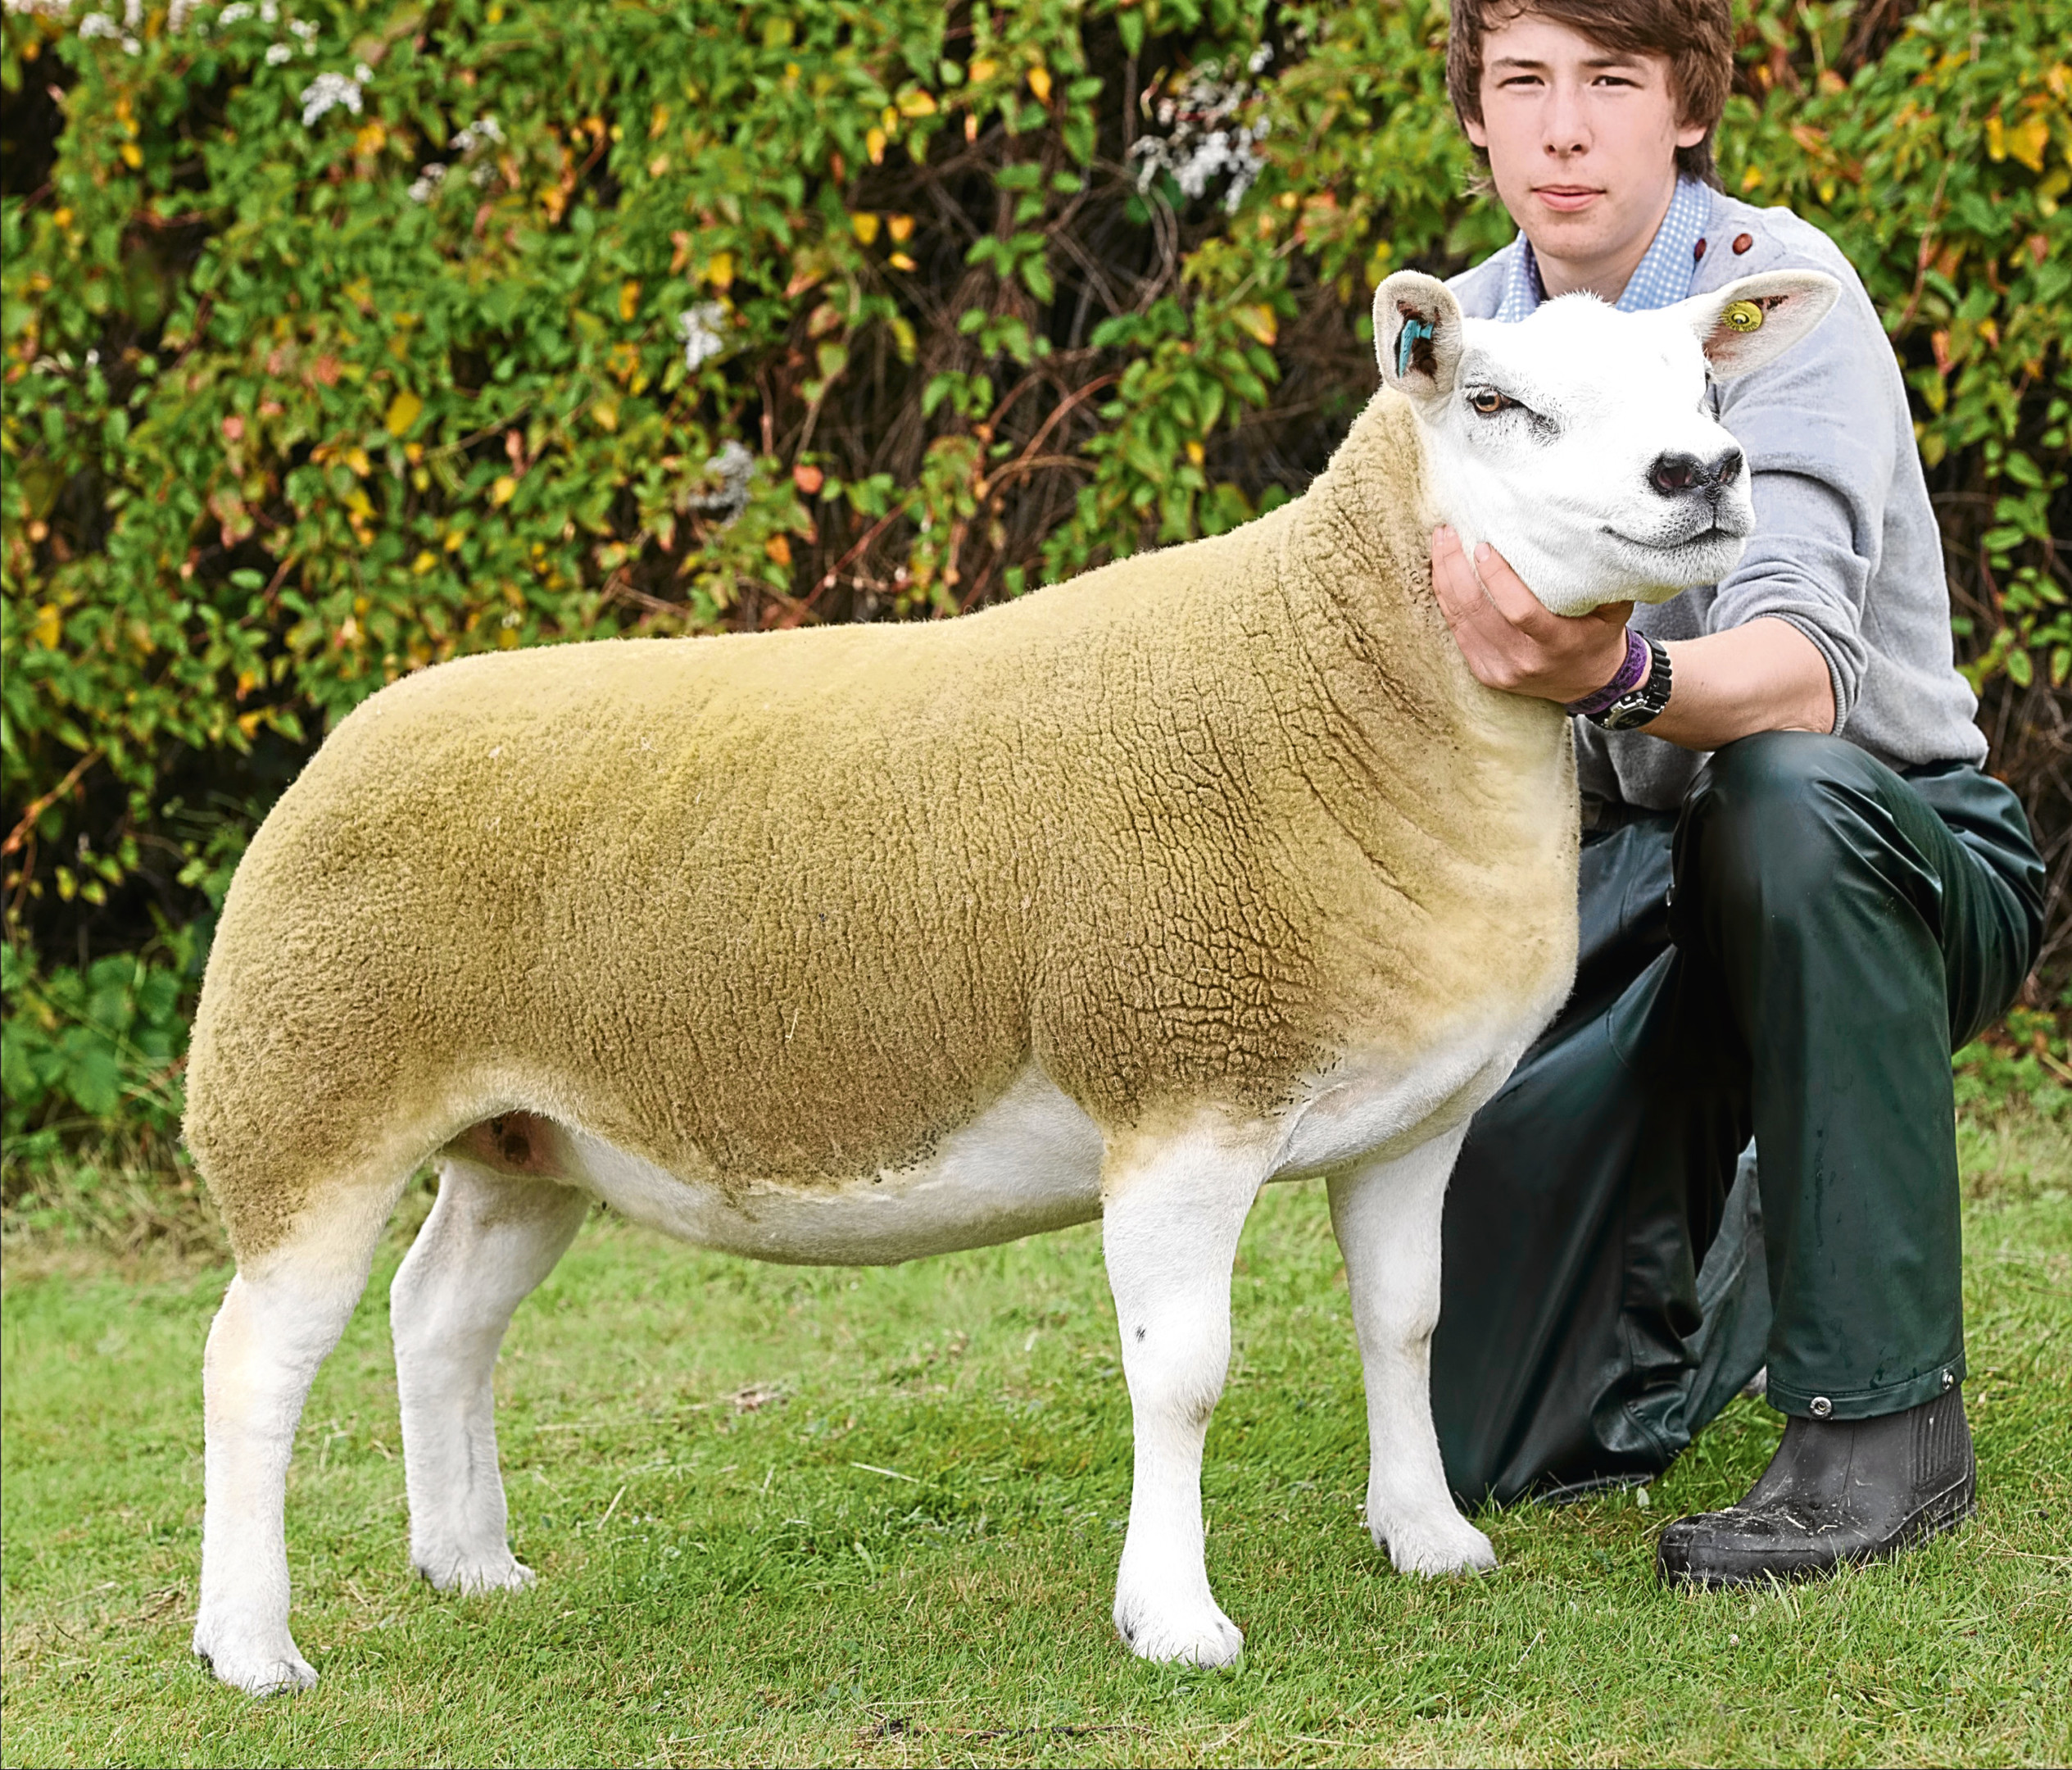 The sheep interbreed and Texel champion from Jemma Green at Corskie.